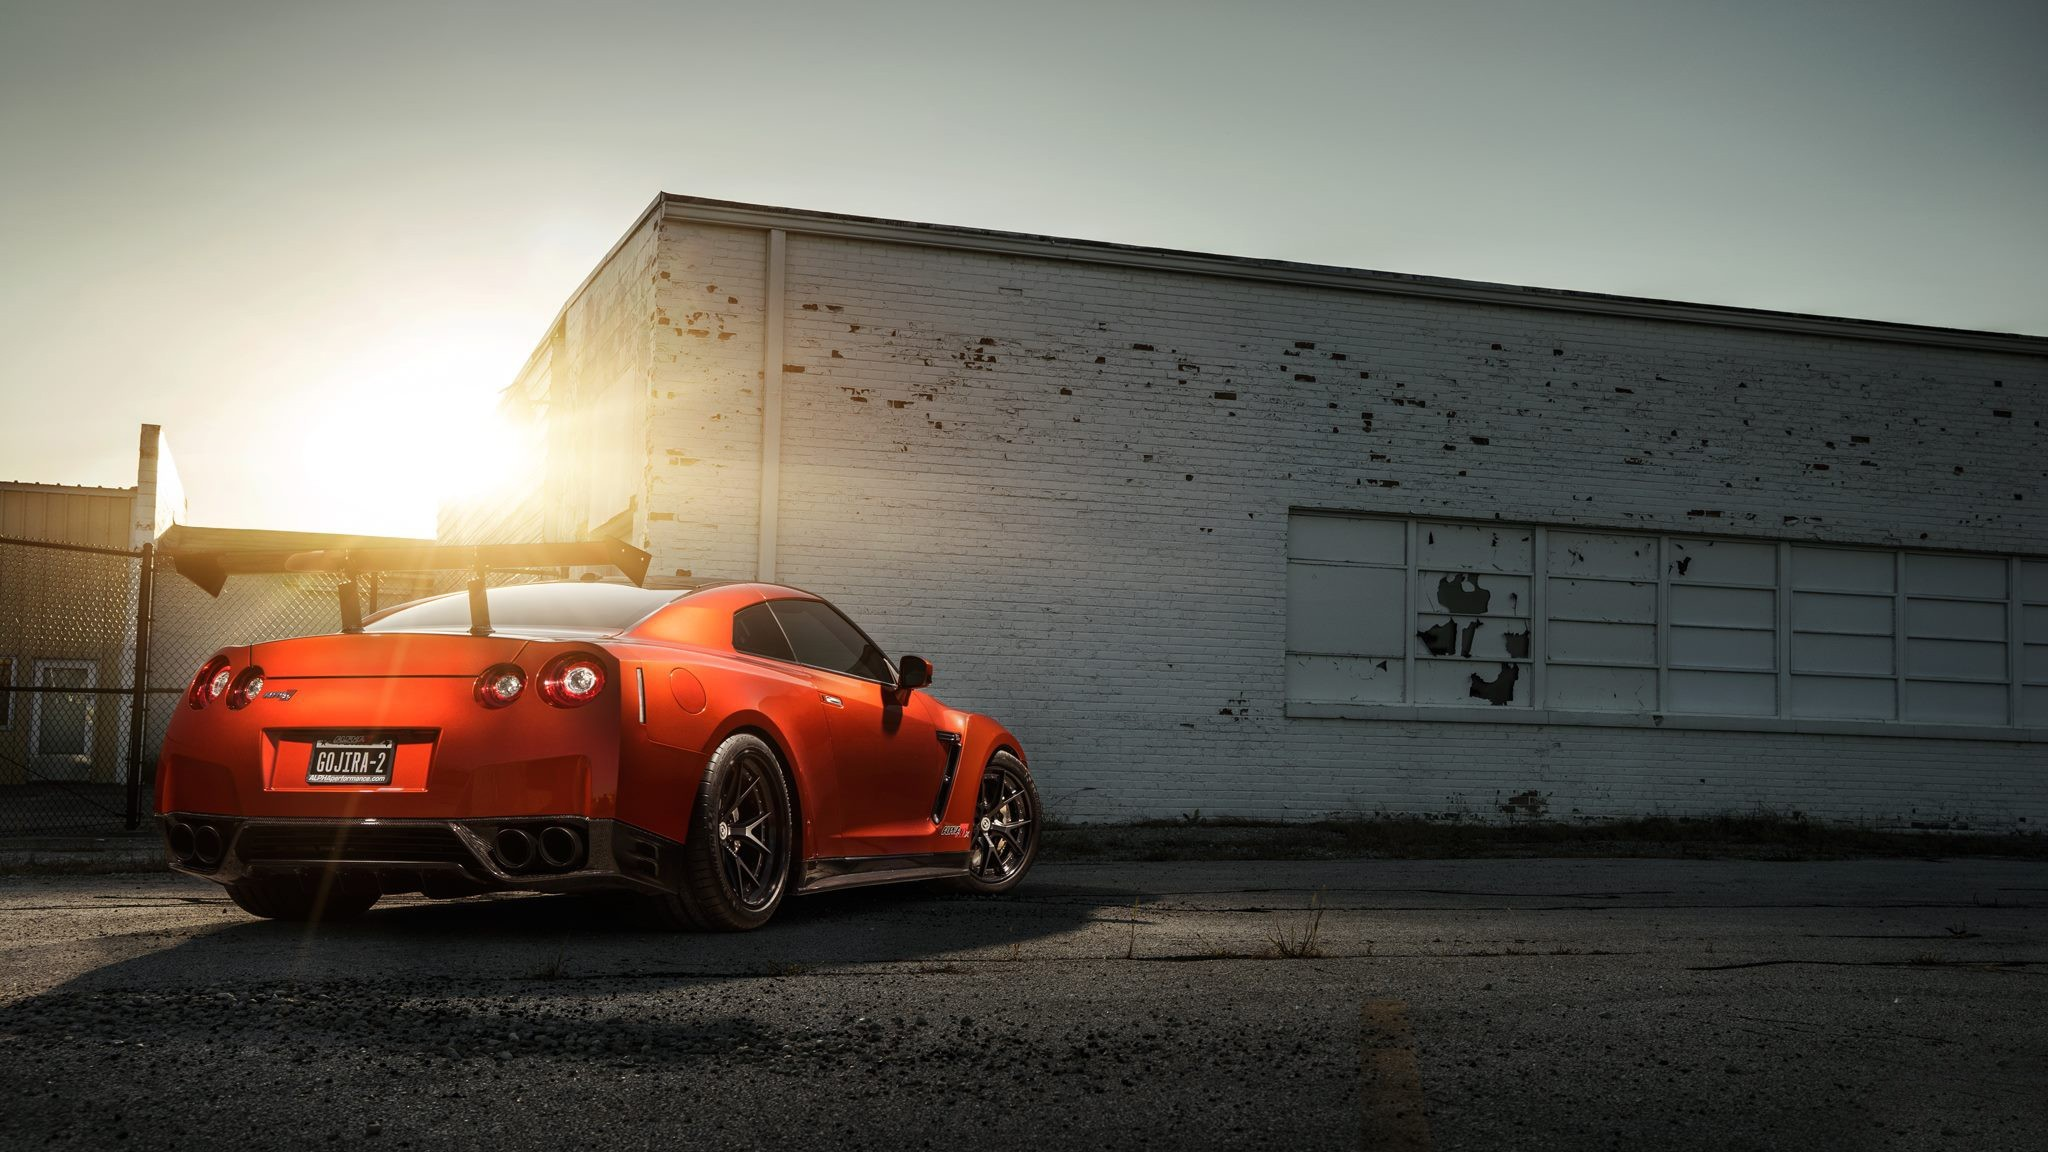 2048x1152 243 nissan-gtr-wallpapers, cars-wallpapers, nissan-wallpapers